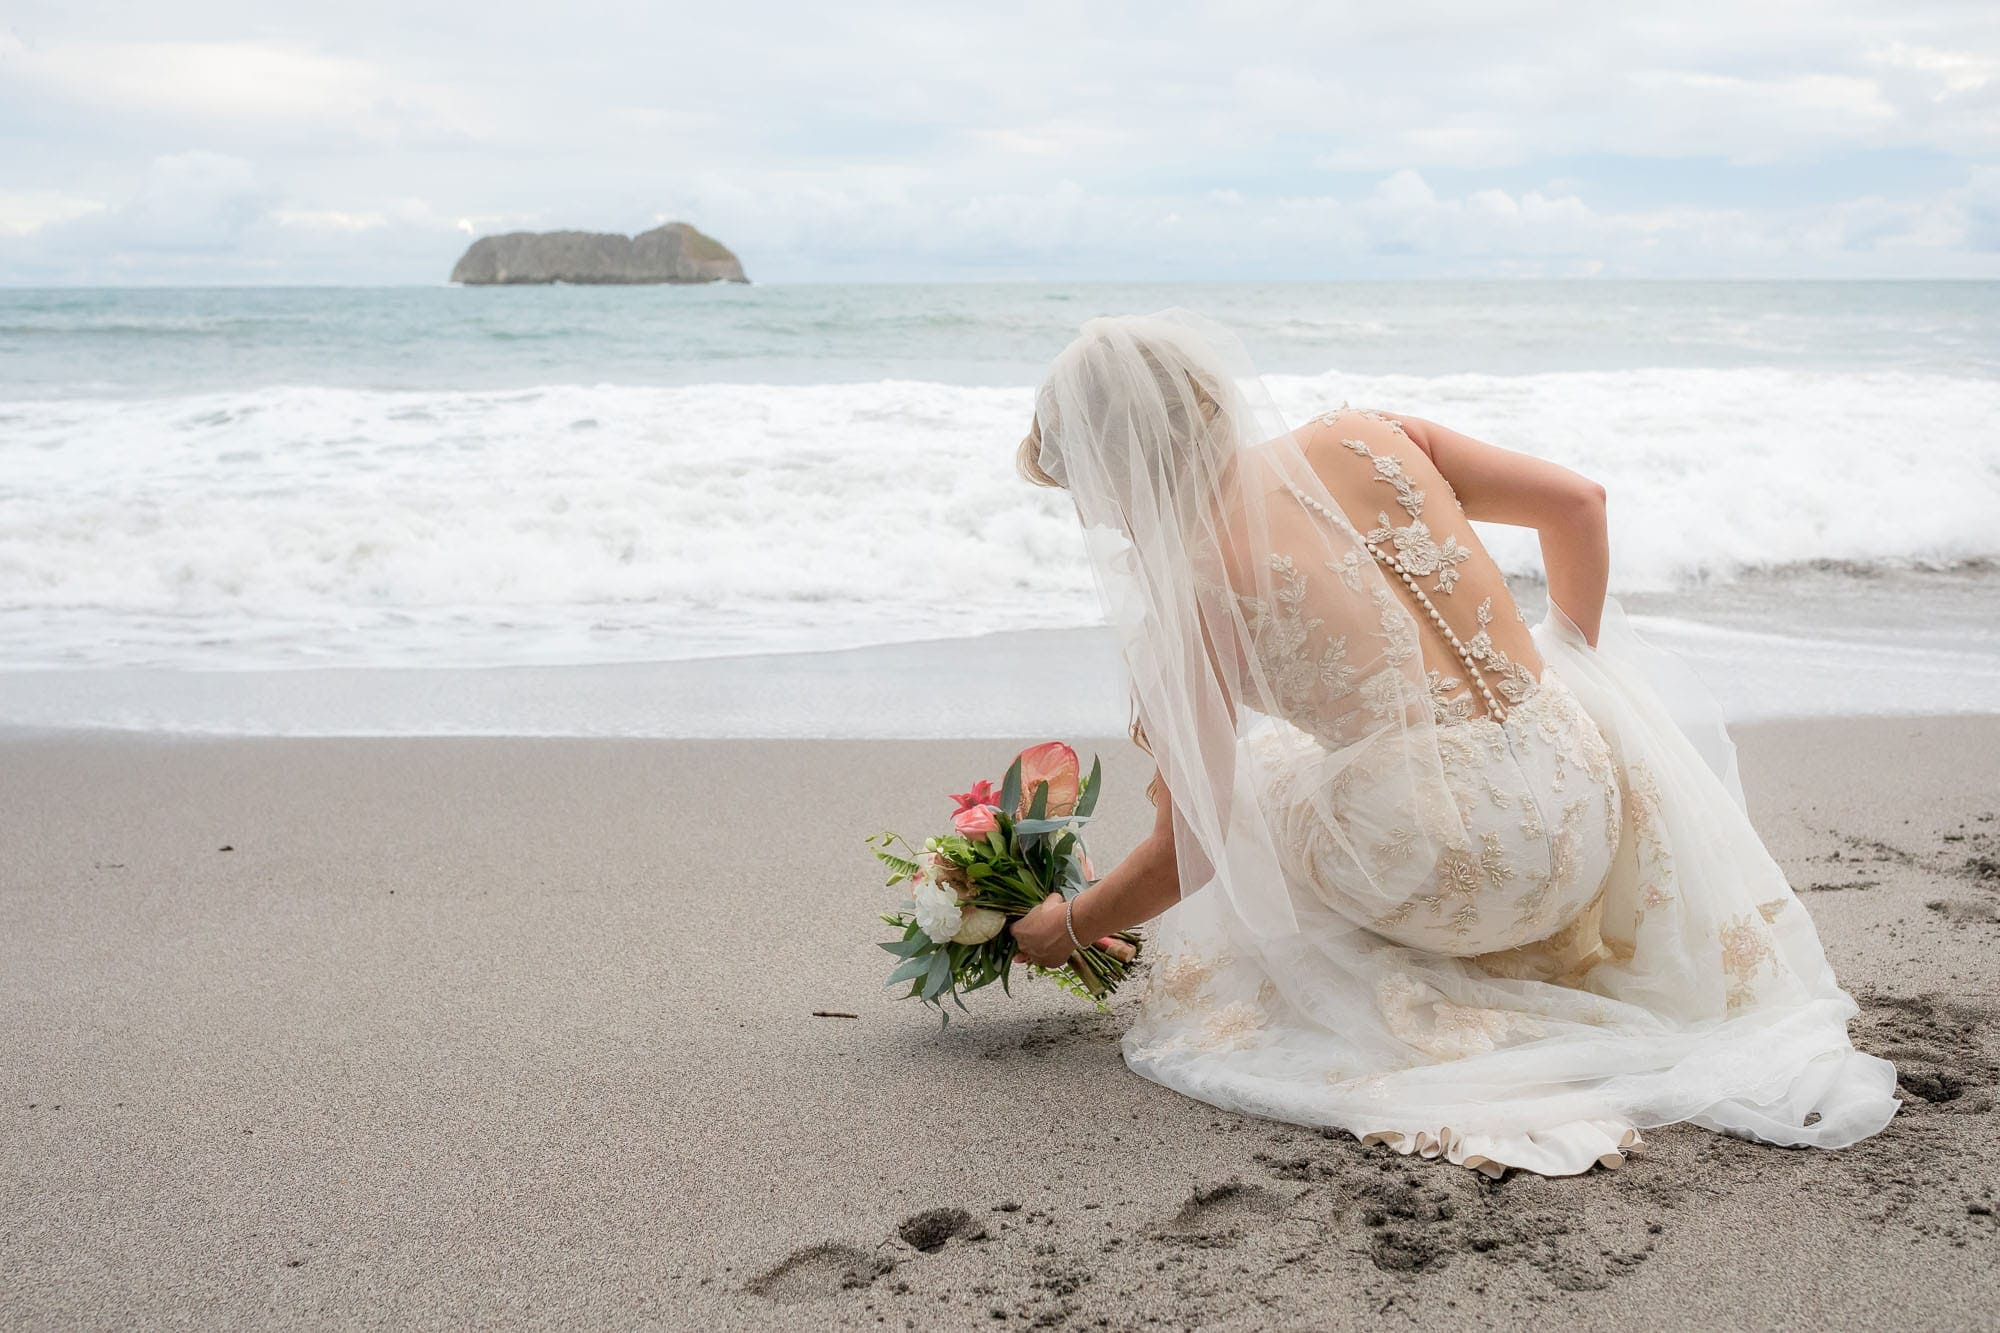 The bride on the beach before the beach wedding reception